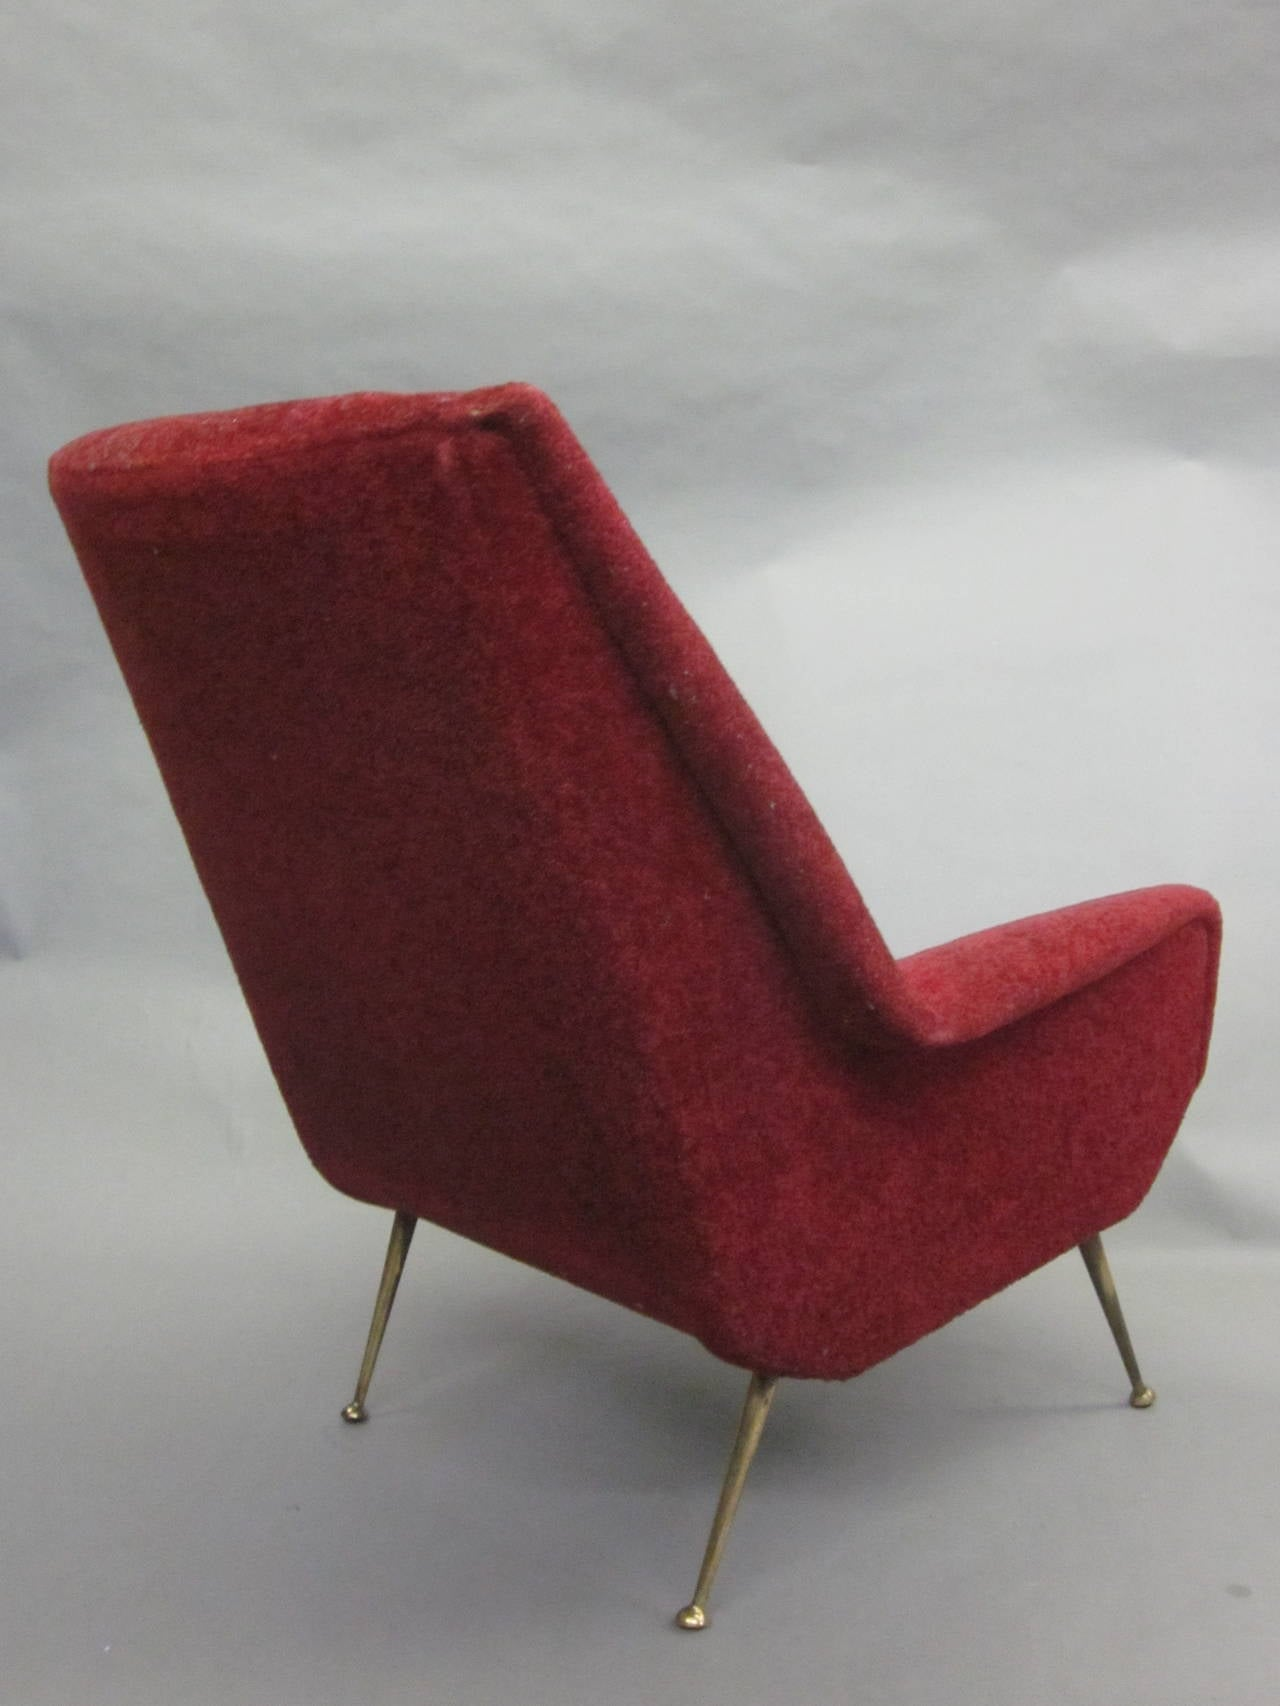 Pair of Italian Mid-Century Modern Lounge Chairs Attr. Gianfranco Frattini, 1950 4